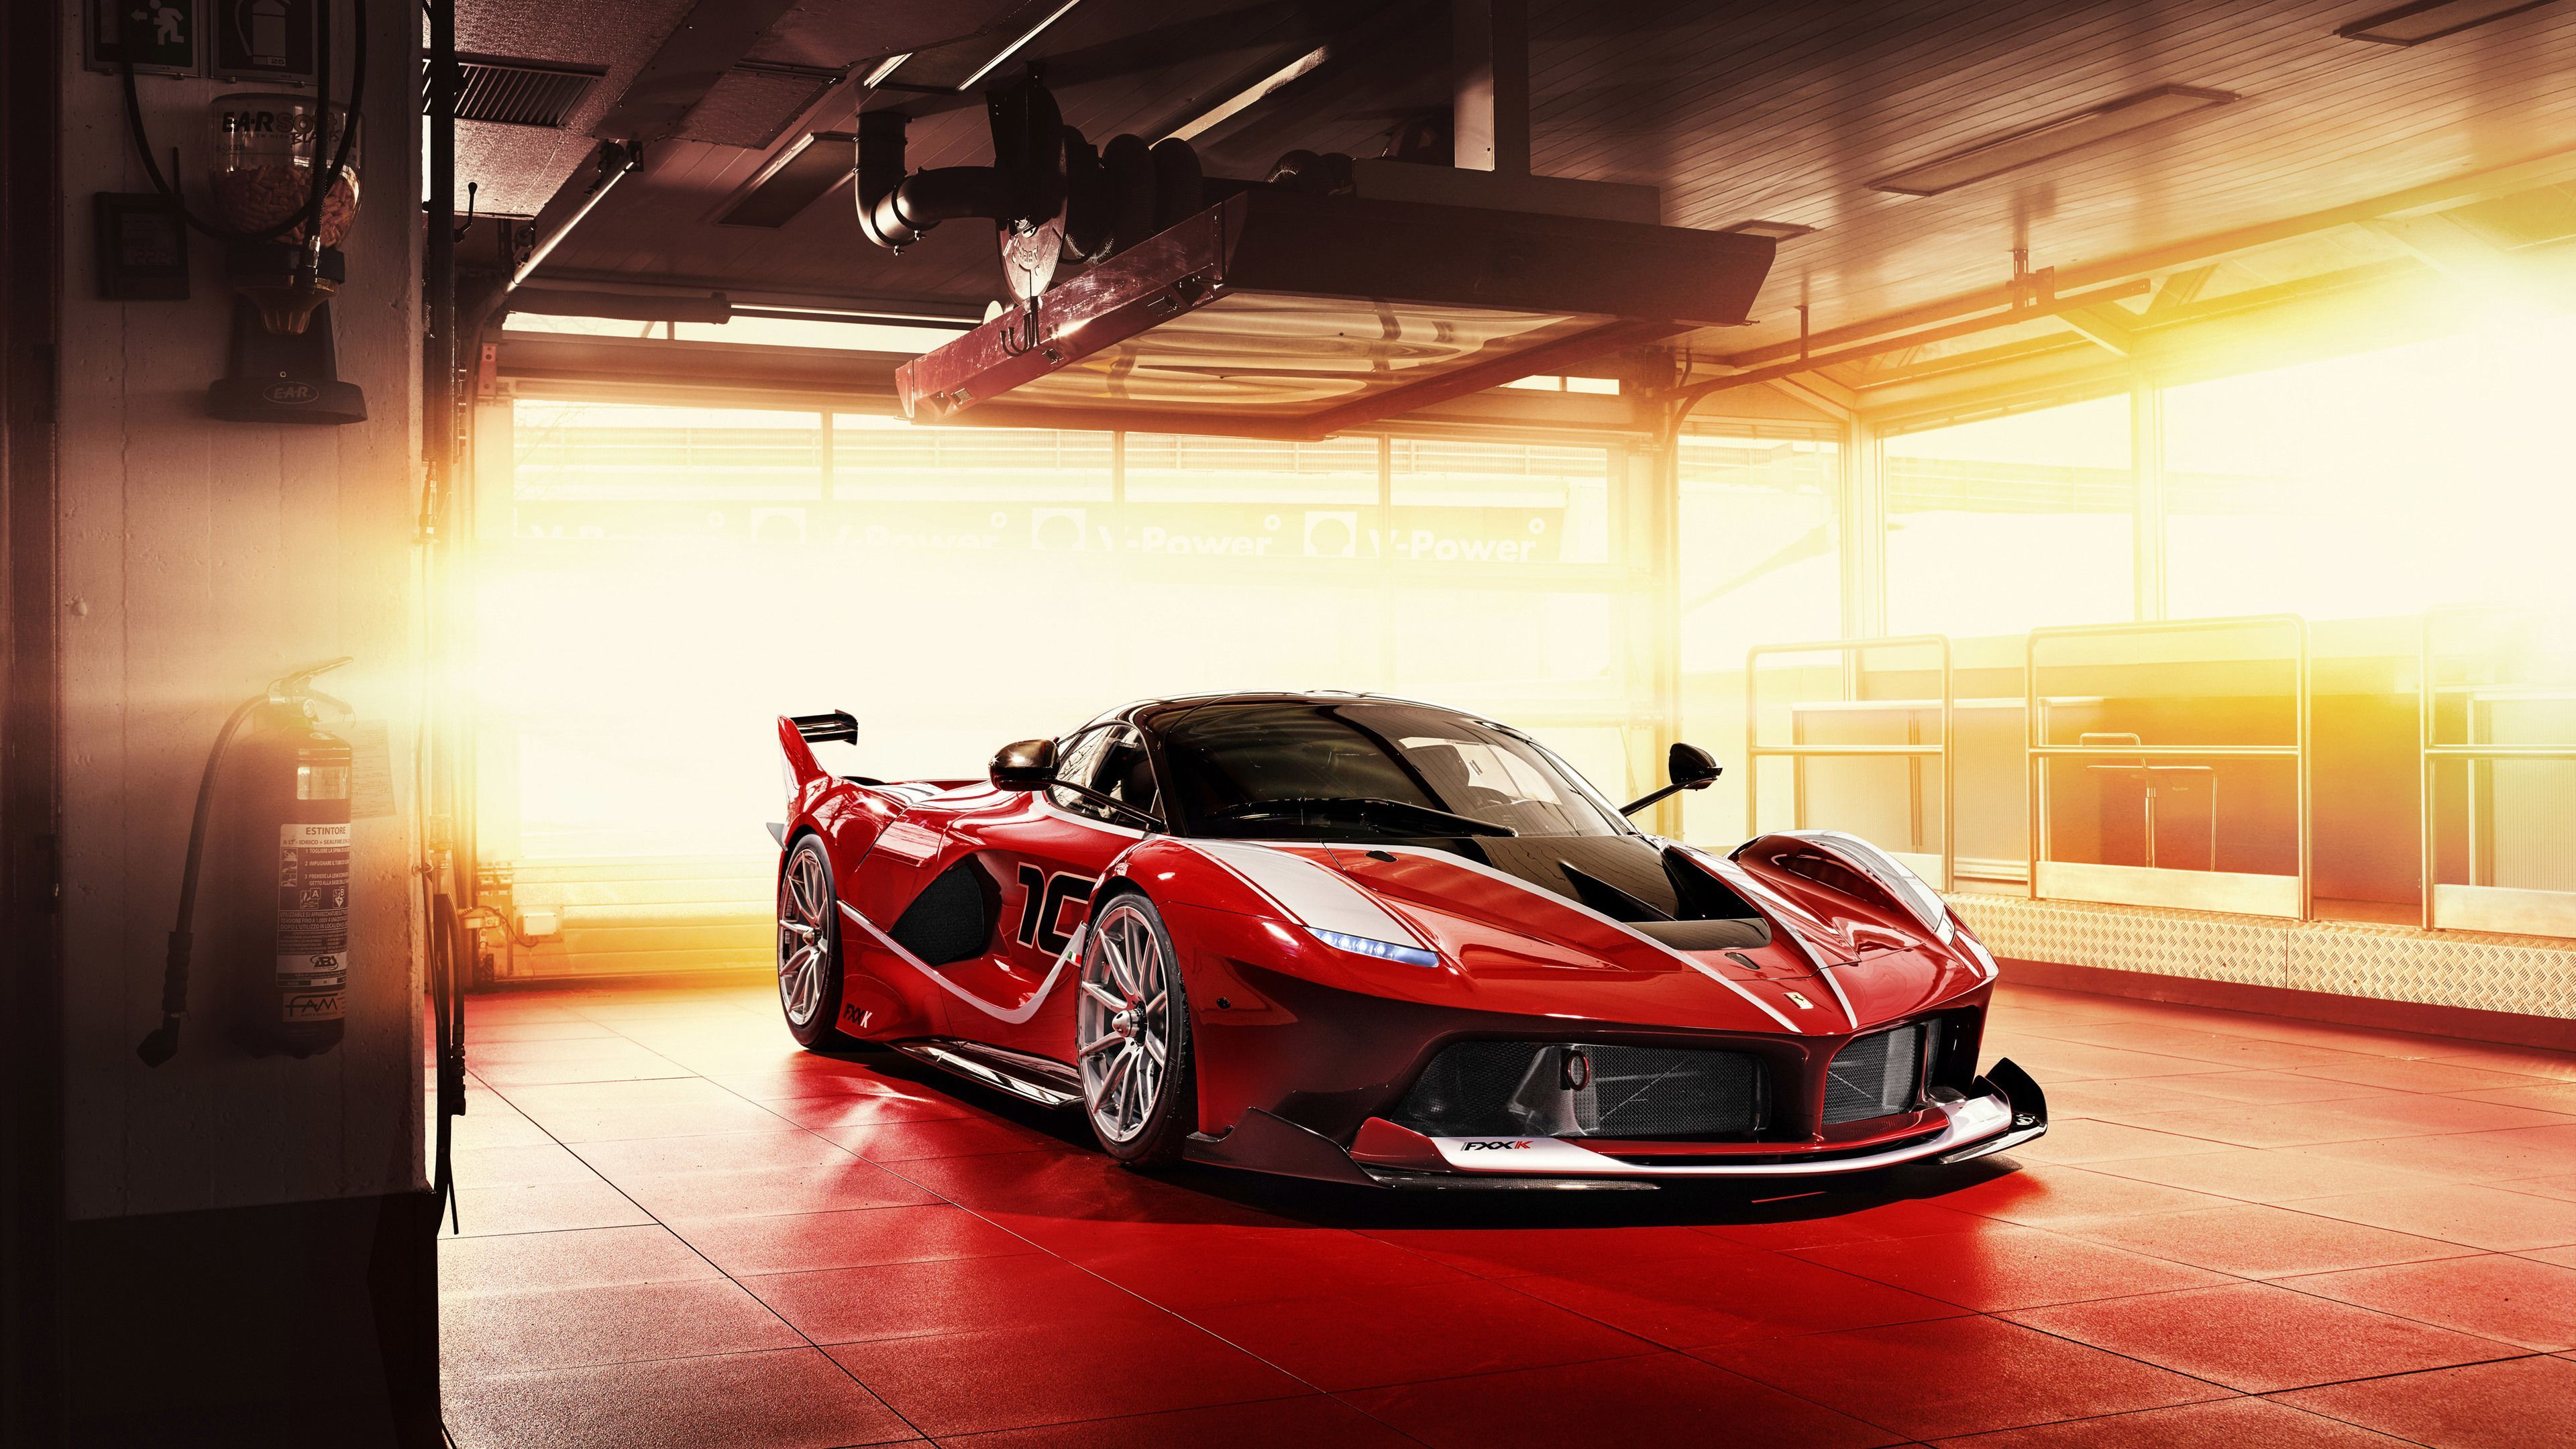 Ferrari Fxxk Wallpapers Top Free Ferrari Fxxk Backgrounds Wallpaperaccess